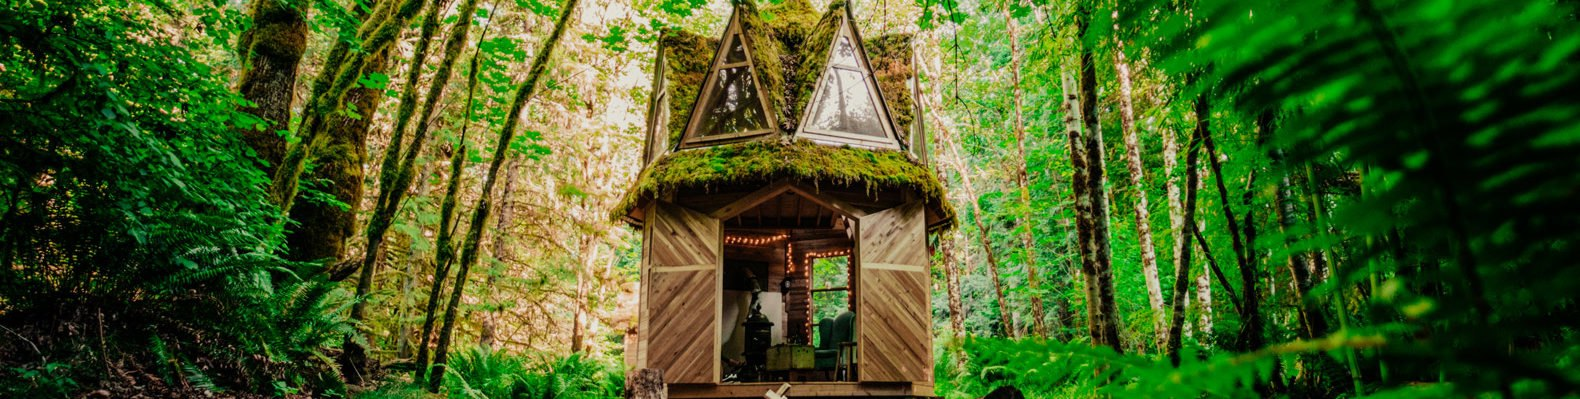 small cabin surrounded by greenery